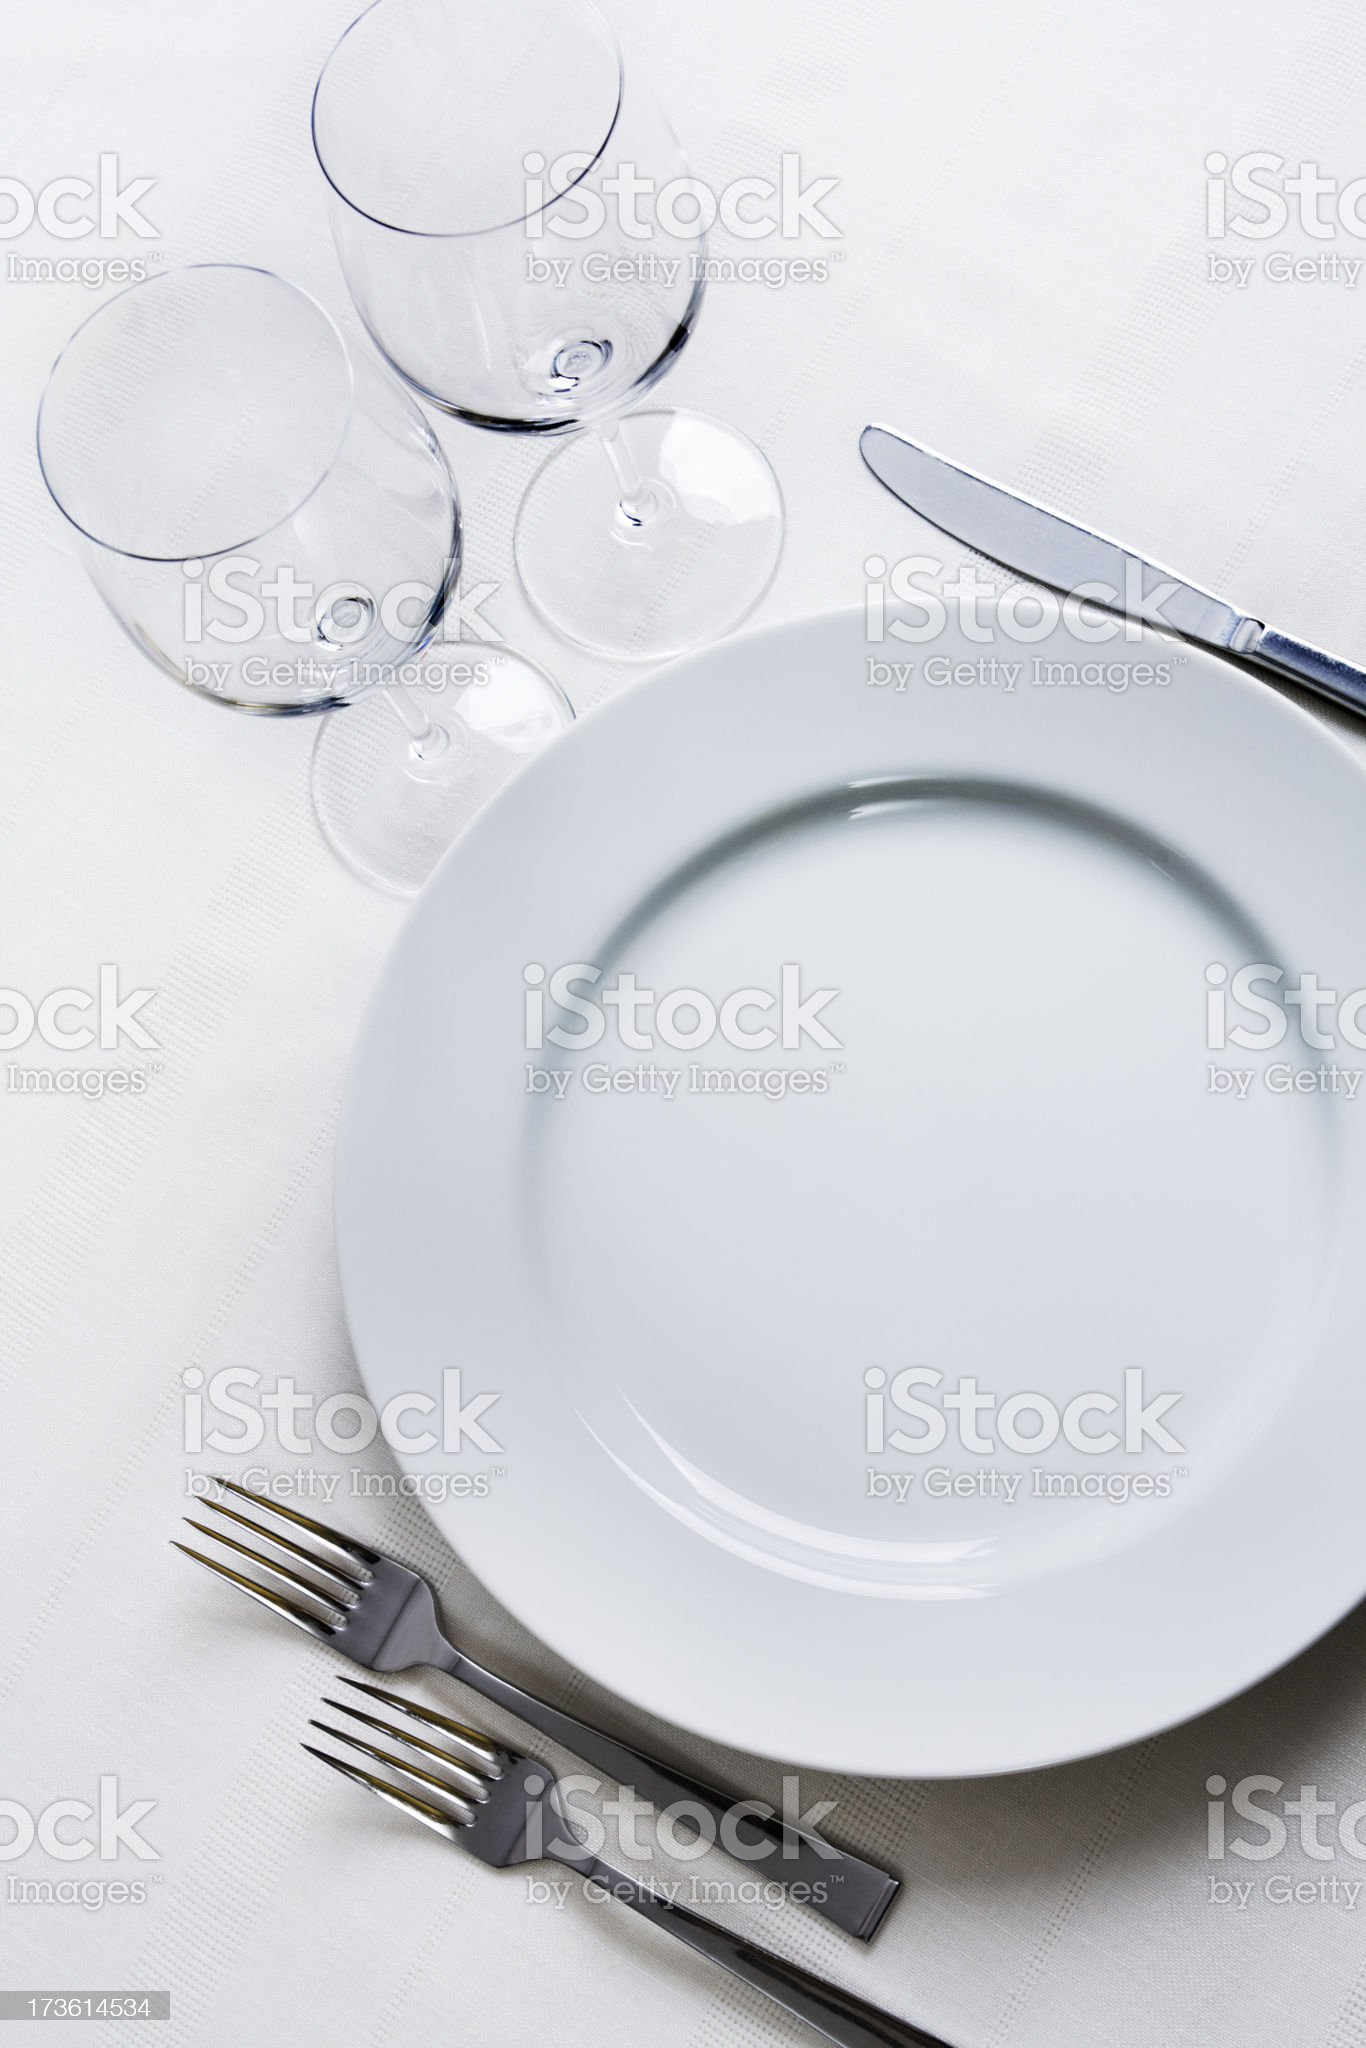 Place Setting with Plate, Silverware, Wine Glasses on White Tablecloth royalty-free stock photo